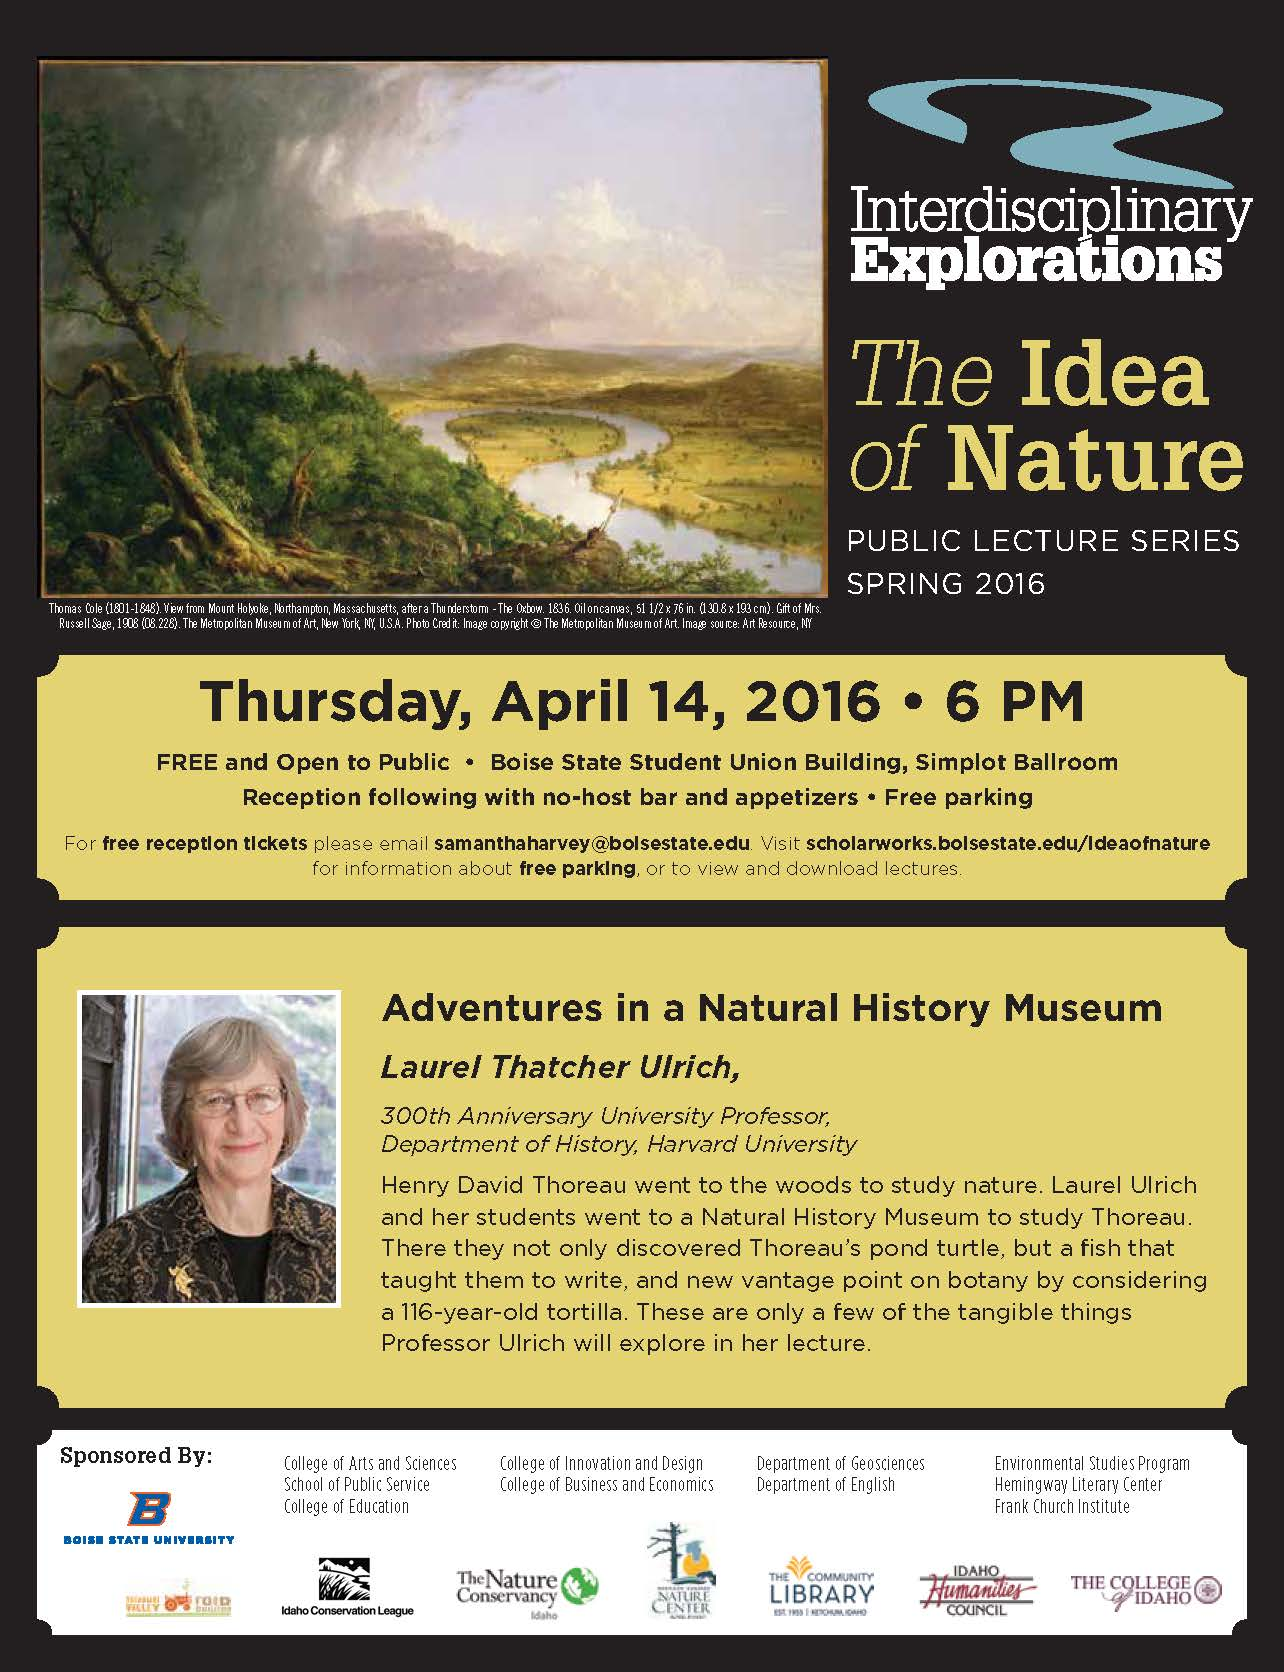 Interdisciplinary Explorations: The Idea of Nature